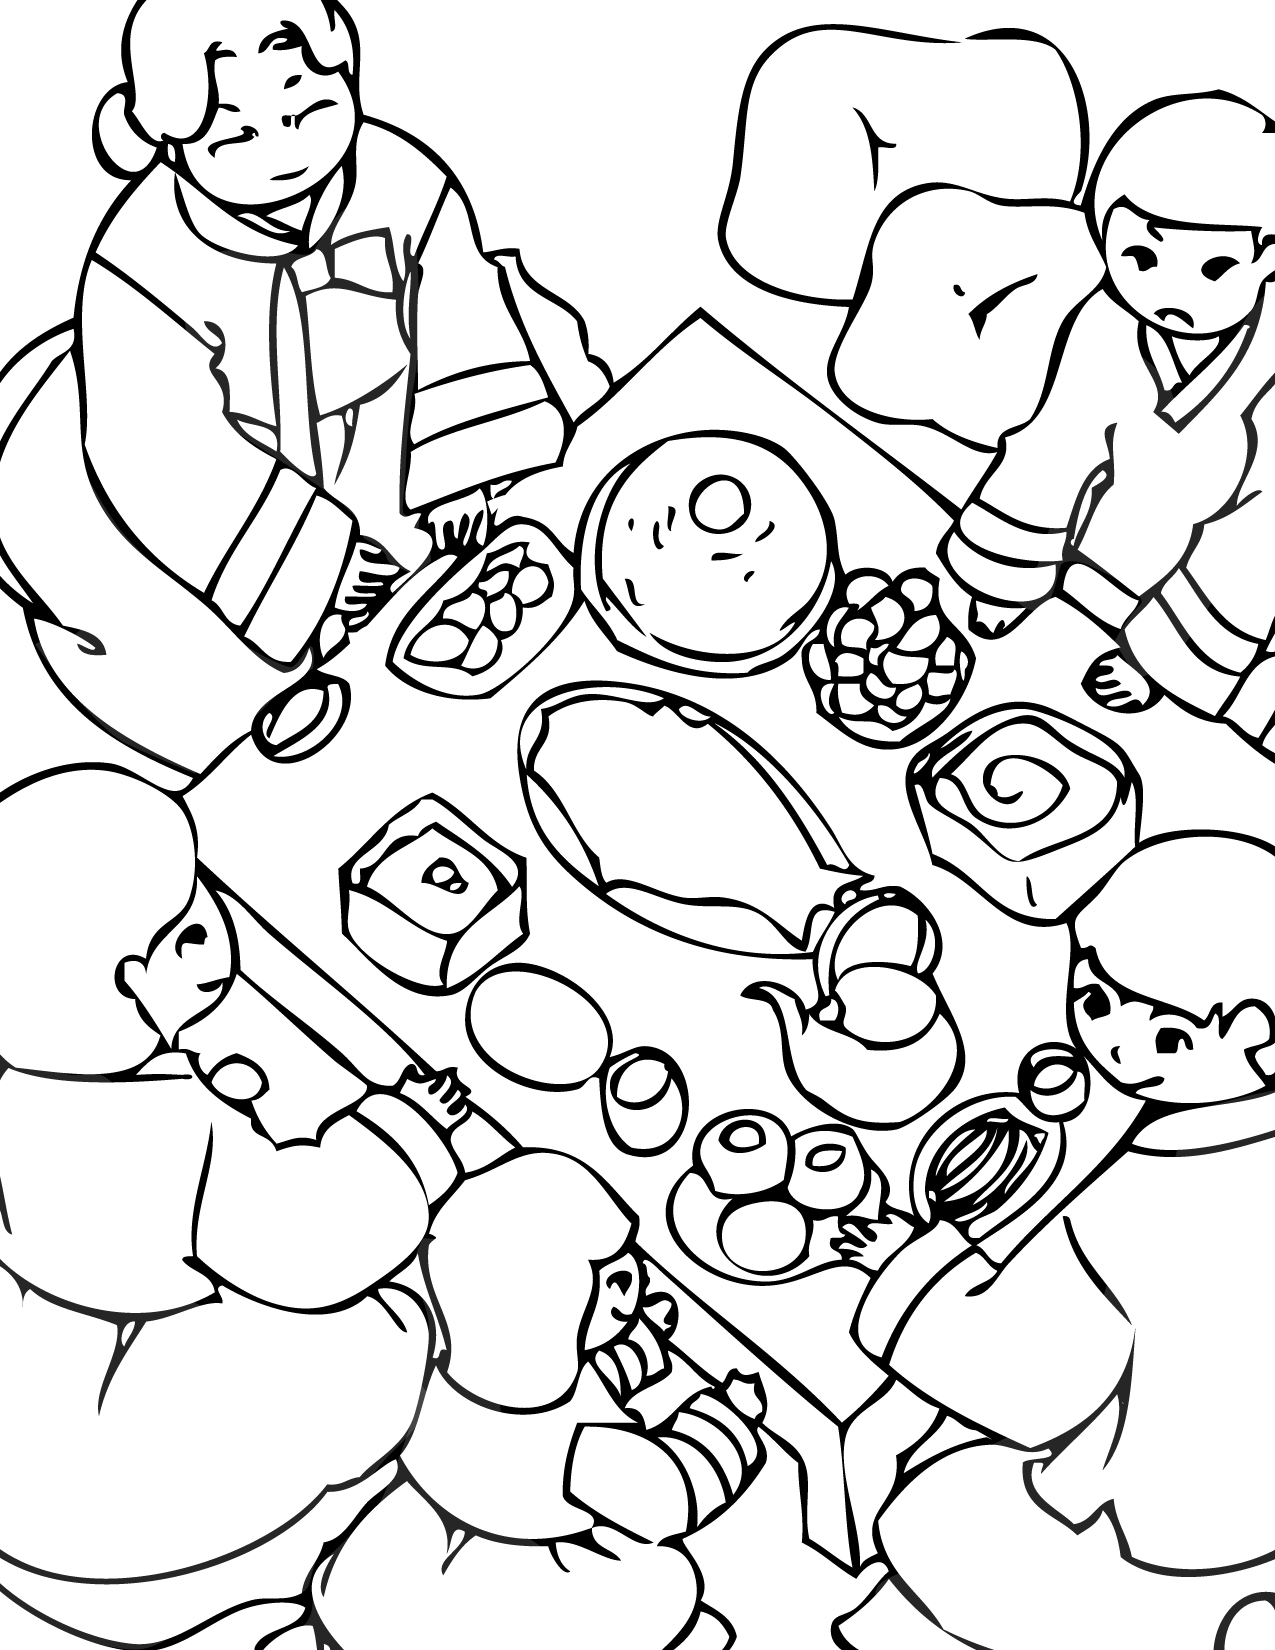 Kpop Coloring Pages At Getdrawings